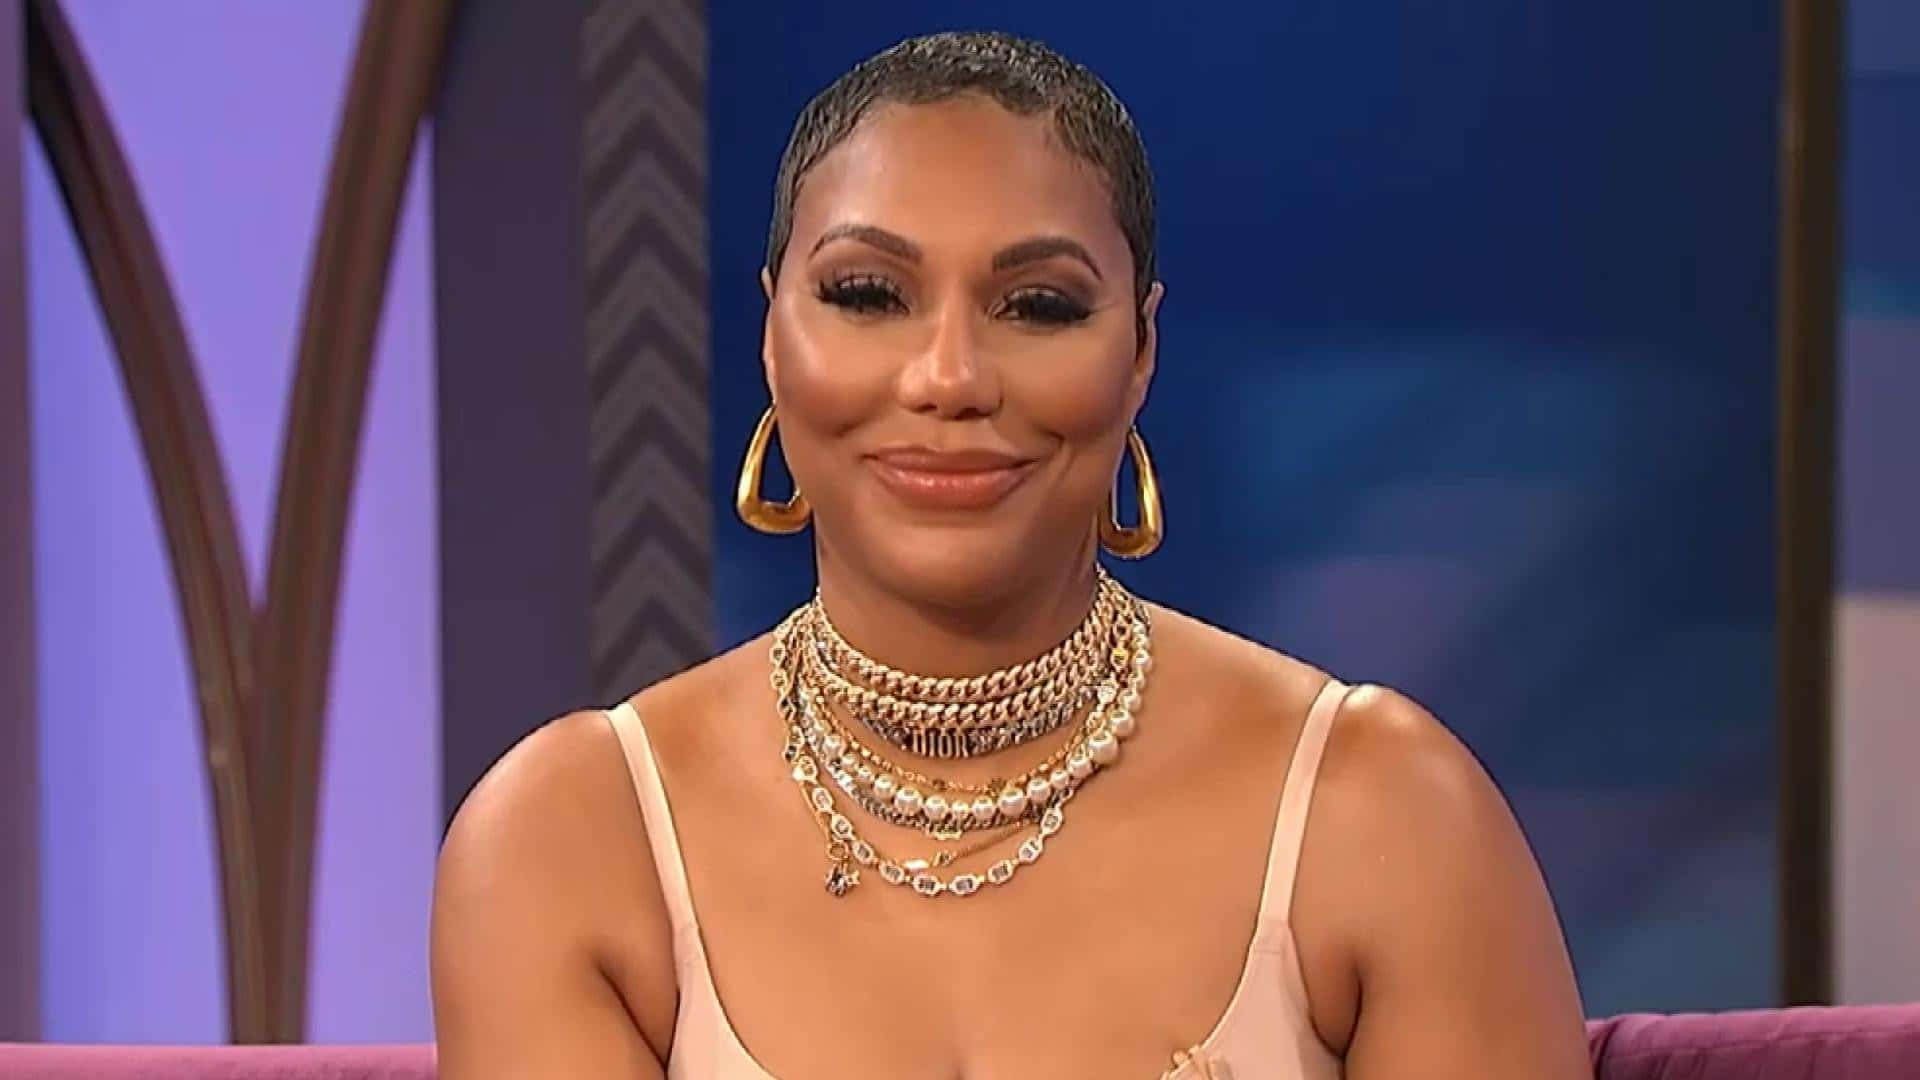 Tamar Braxton Has Great News For Ladies Who Have Hair Growth Troubles - Check Out Her Message